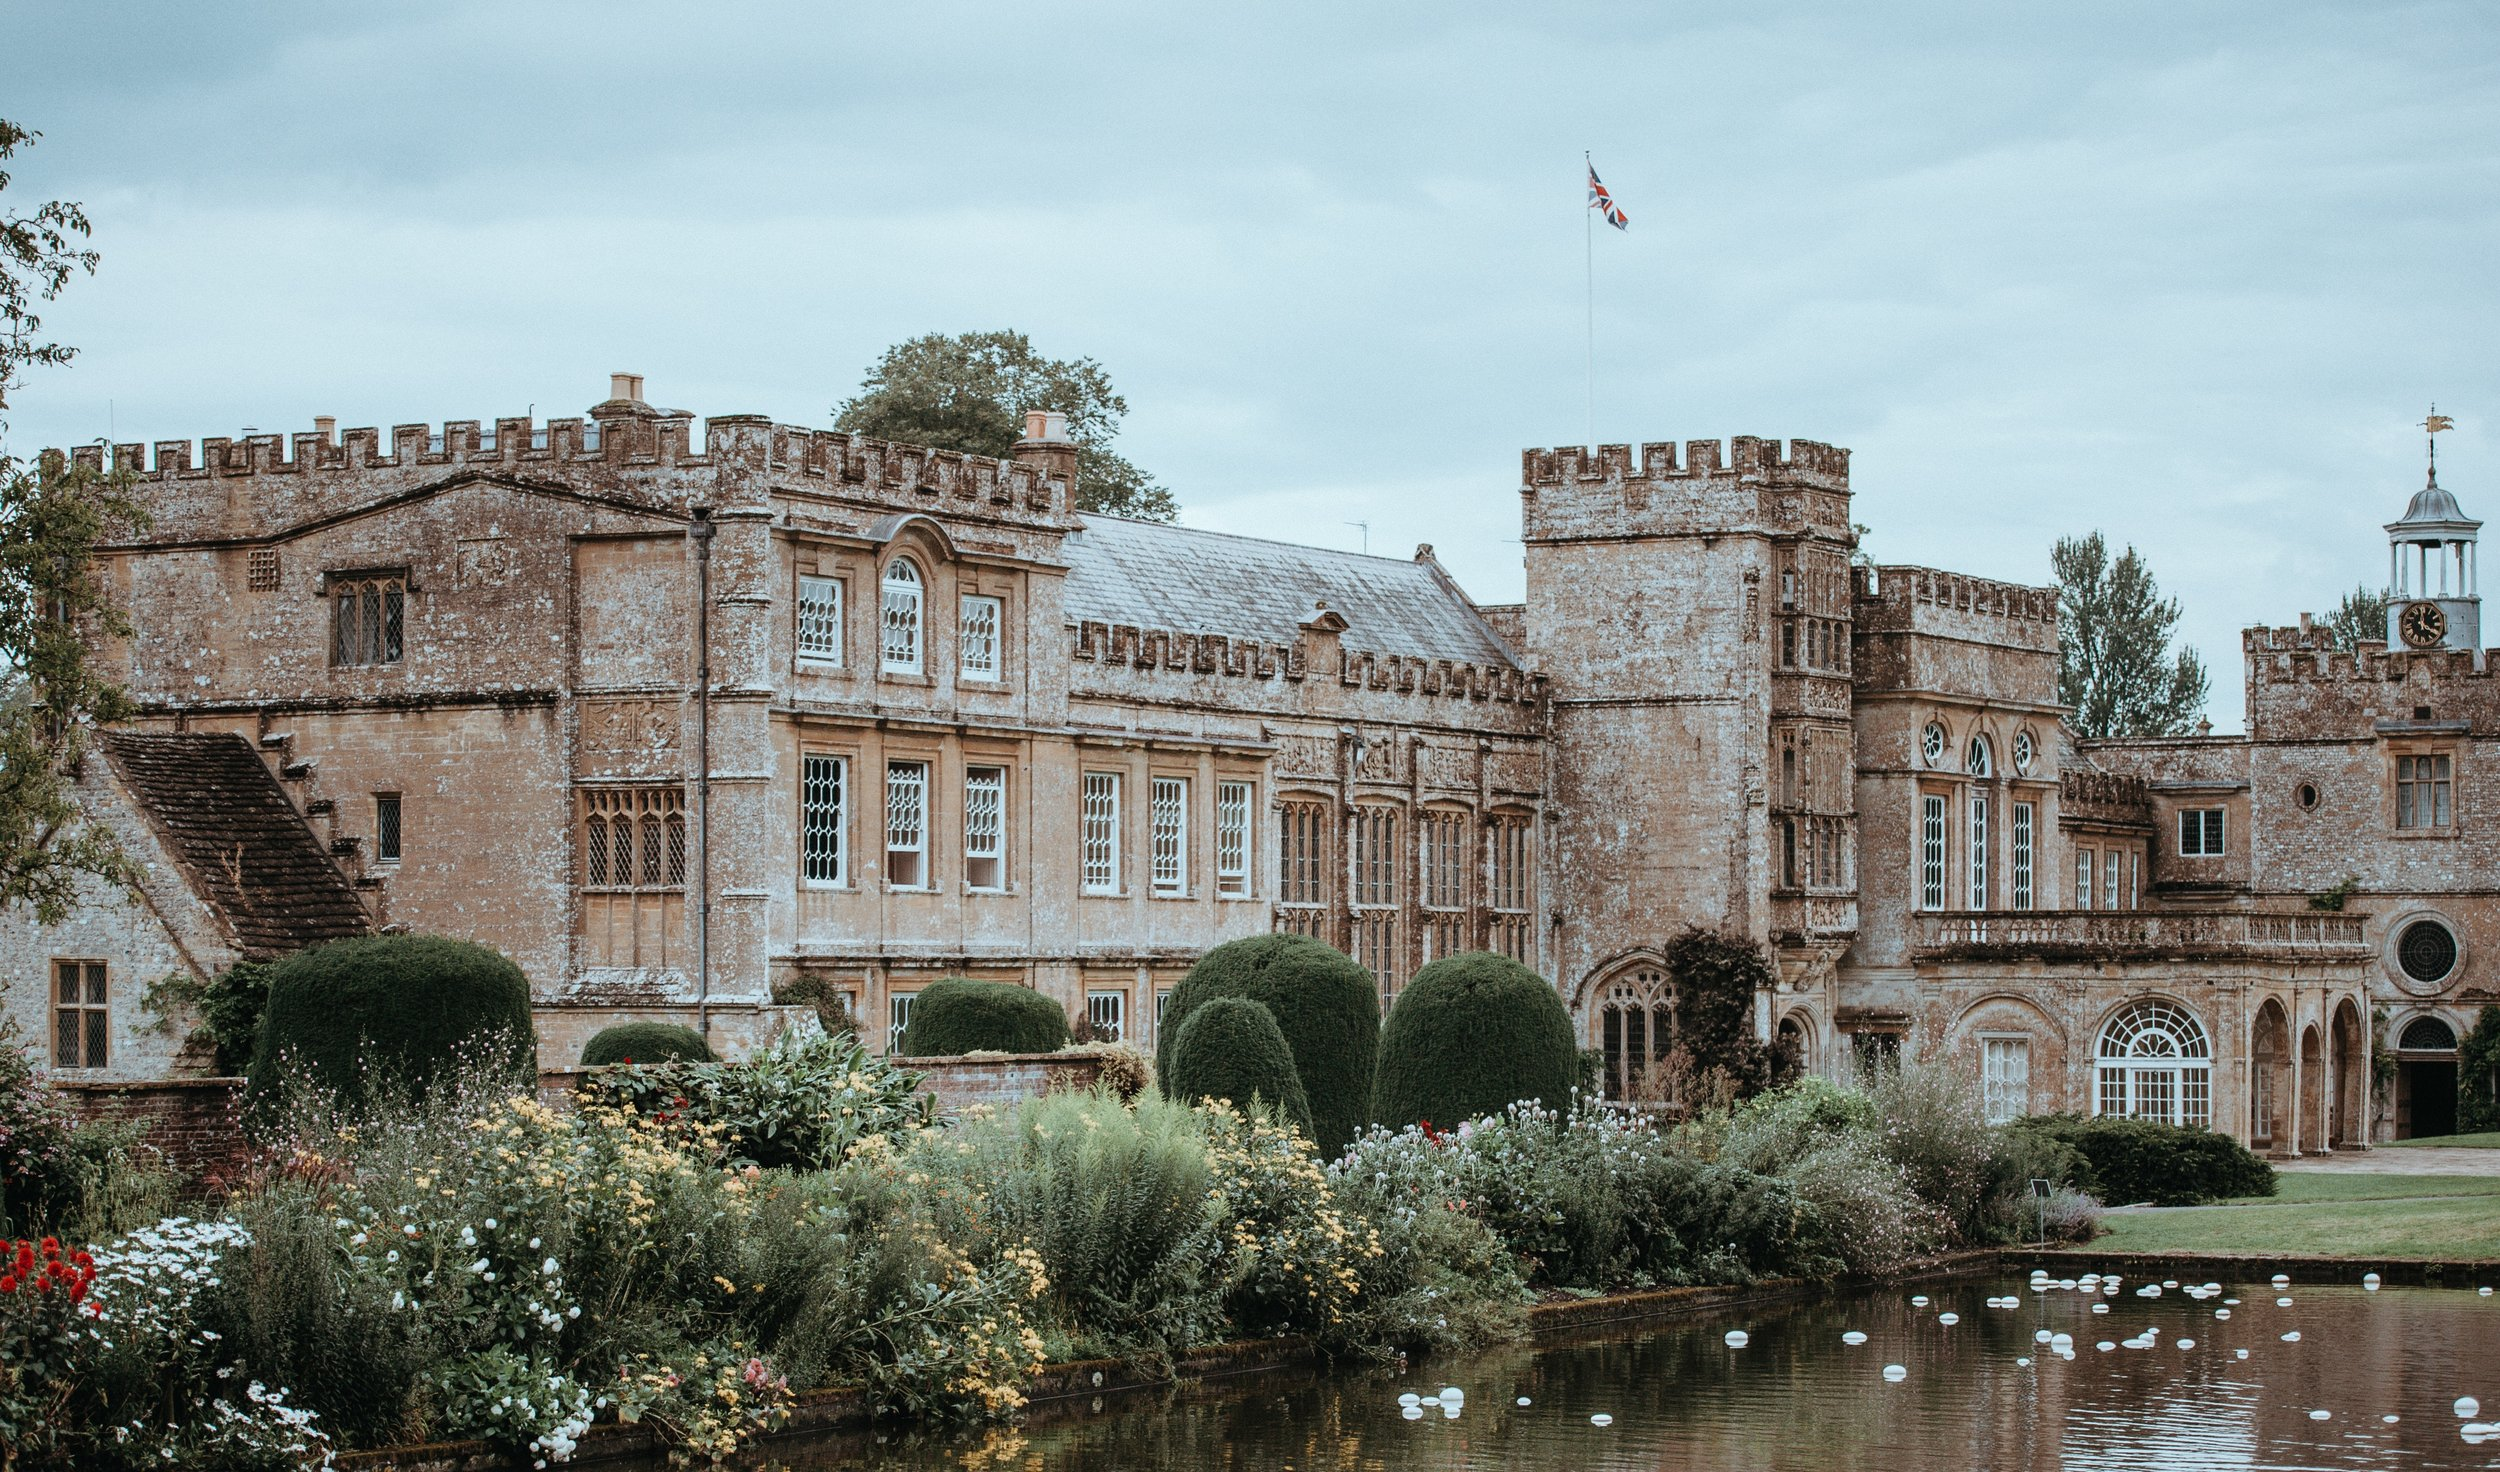 Forde Abbey looking resplendent